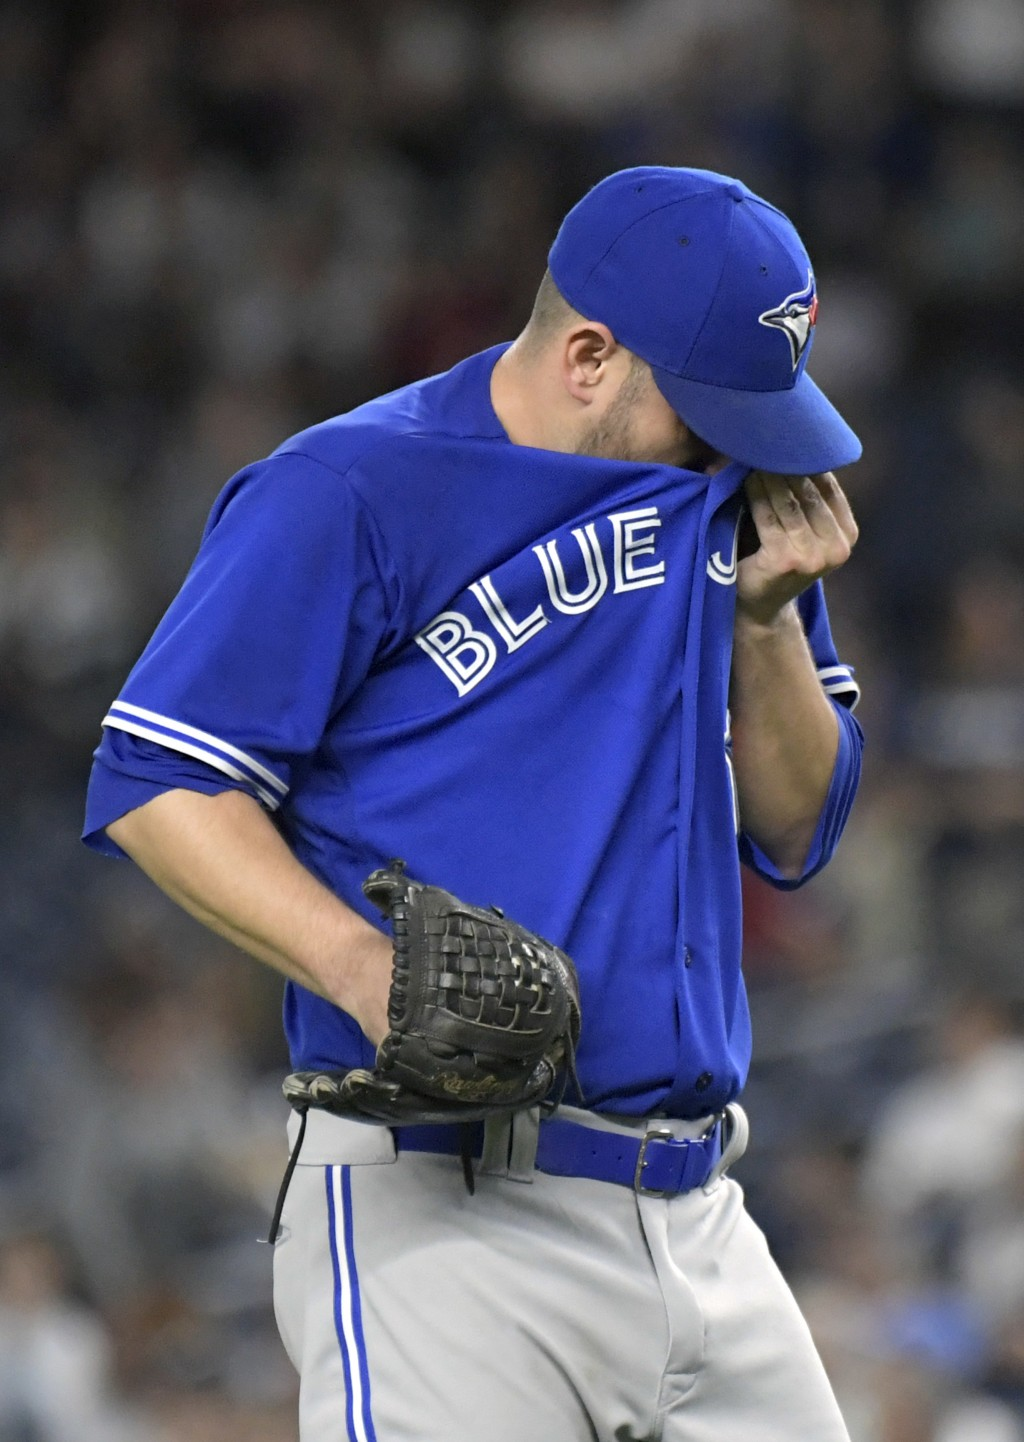 Toronto Blue Jays pitcher Marco Estrada reacts after the New York Yankees scored during the first inning of a baseball game Friday, Sept.14, 2018, at